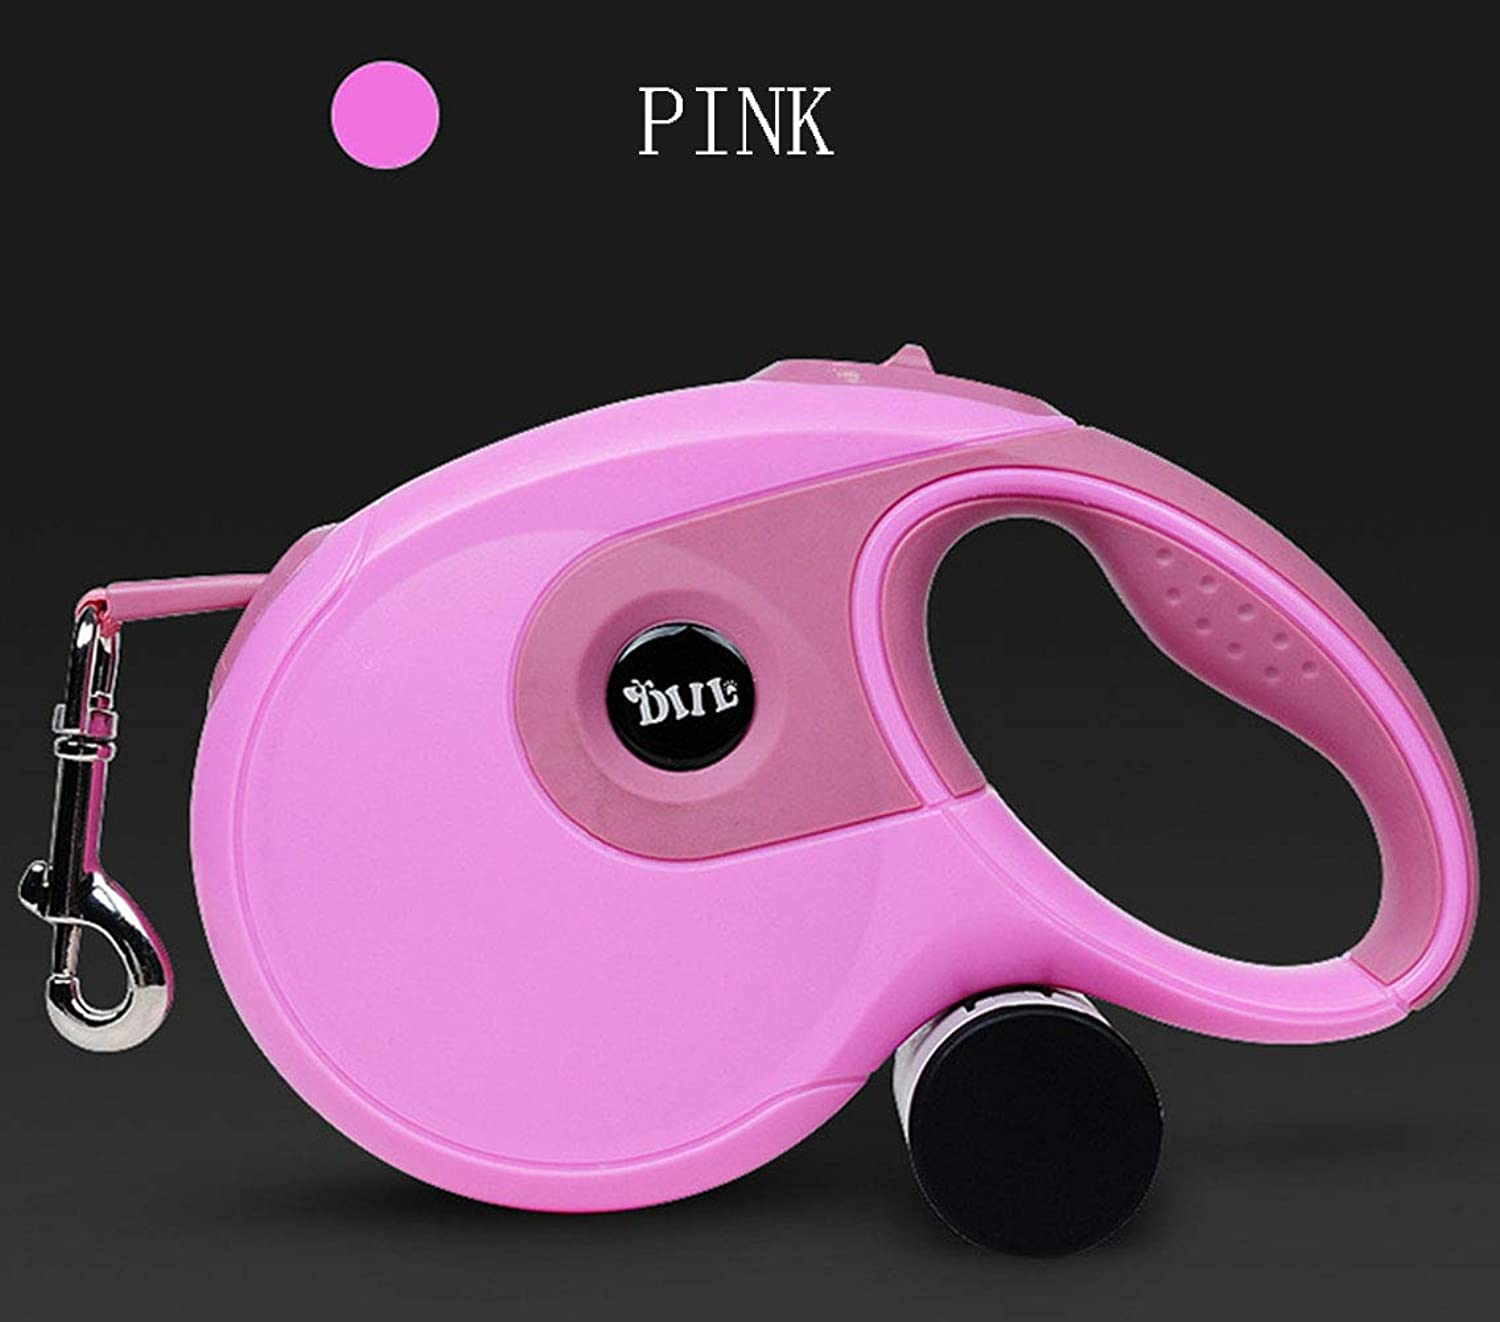 Retractable Dog Leash Medium Large Breed Tangle Free One Button Break Lock Waste Dispenser and Bags Included Pet Traction Rope Training Walking 8M,Pink